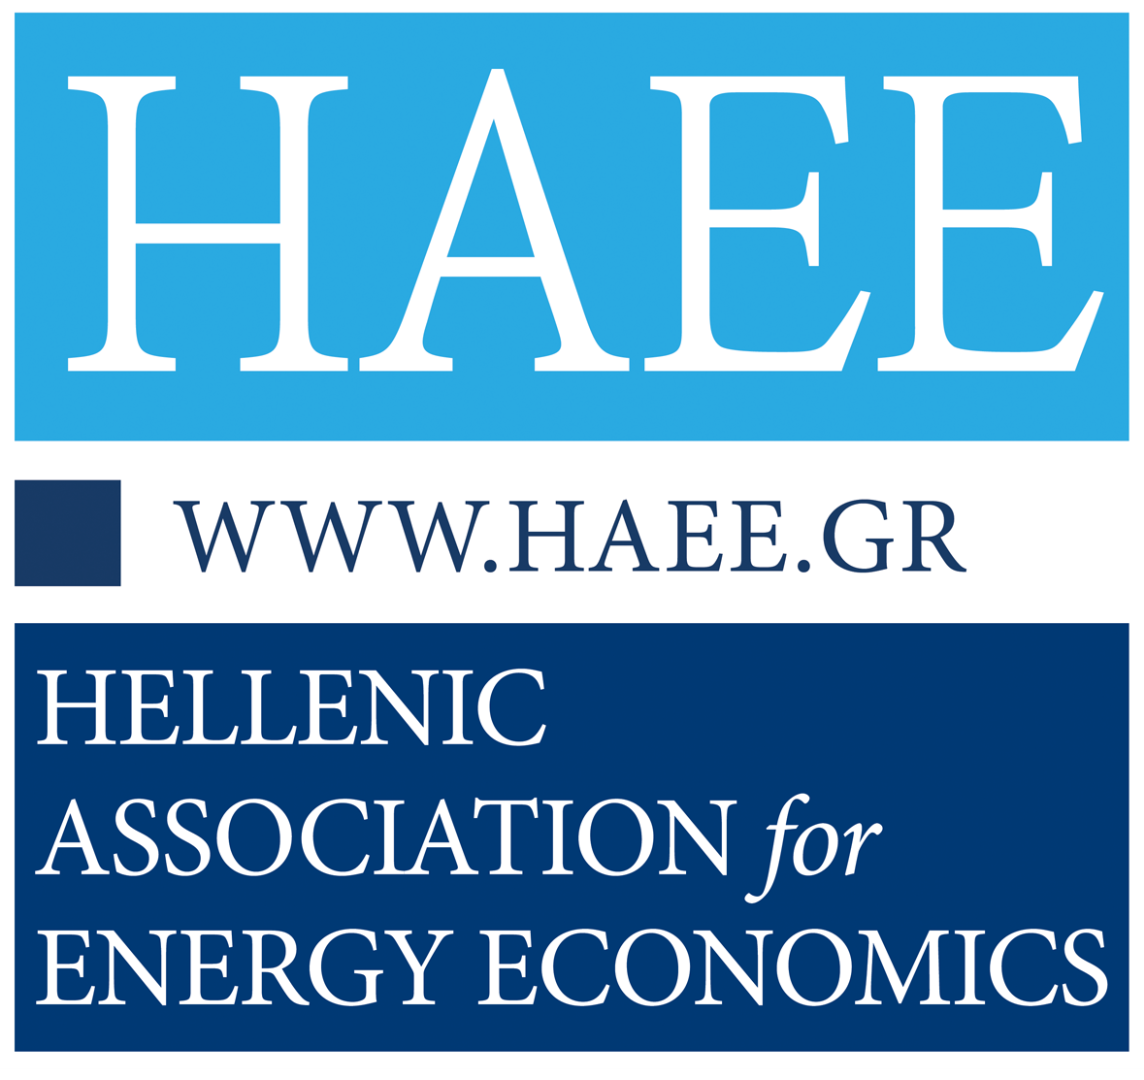 Hellenic Association of Energy Economics (HAEE)